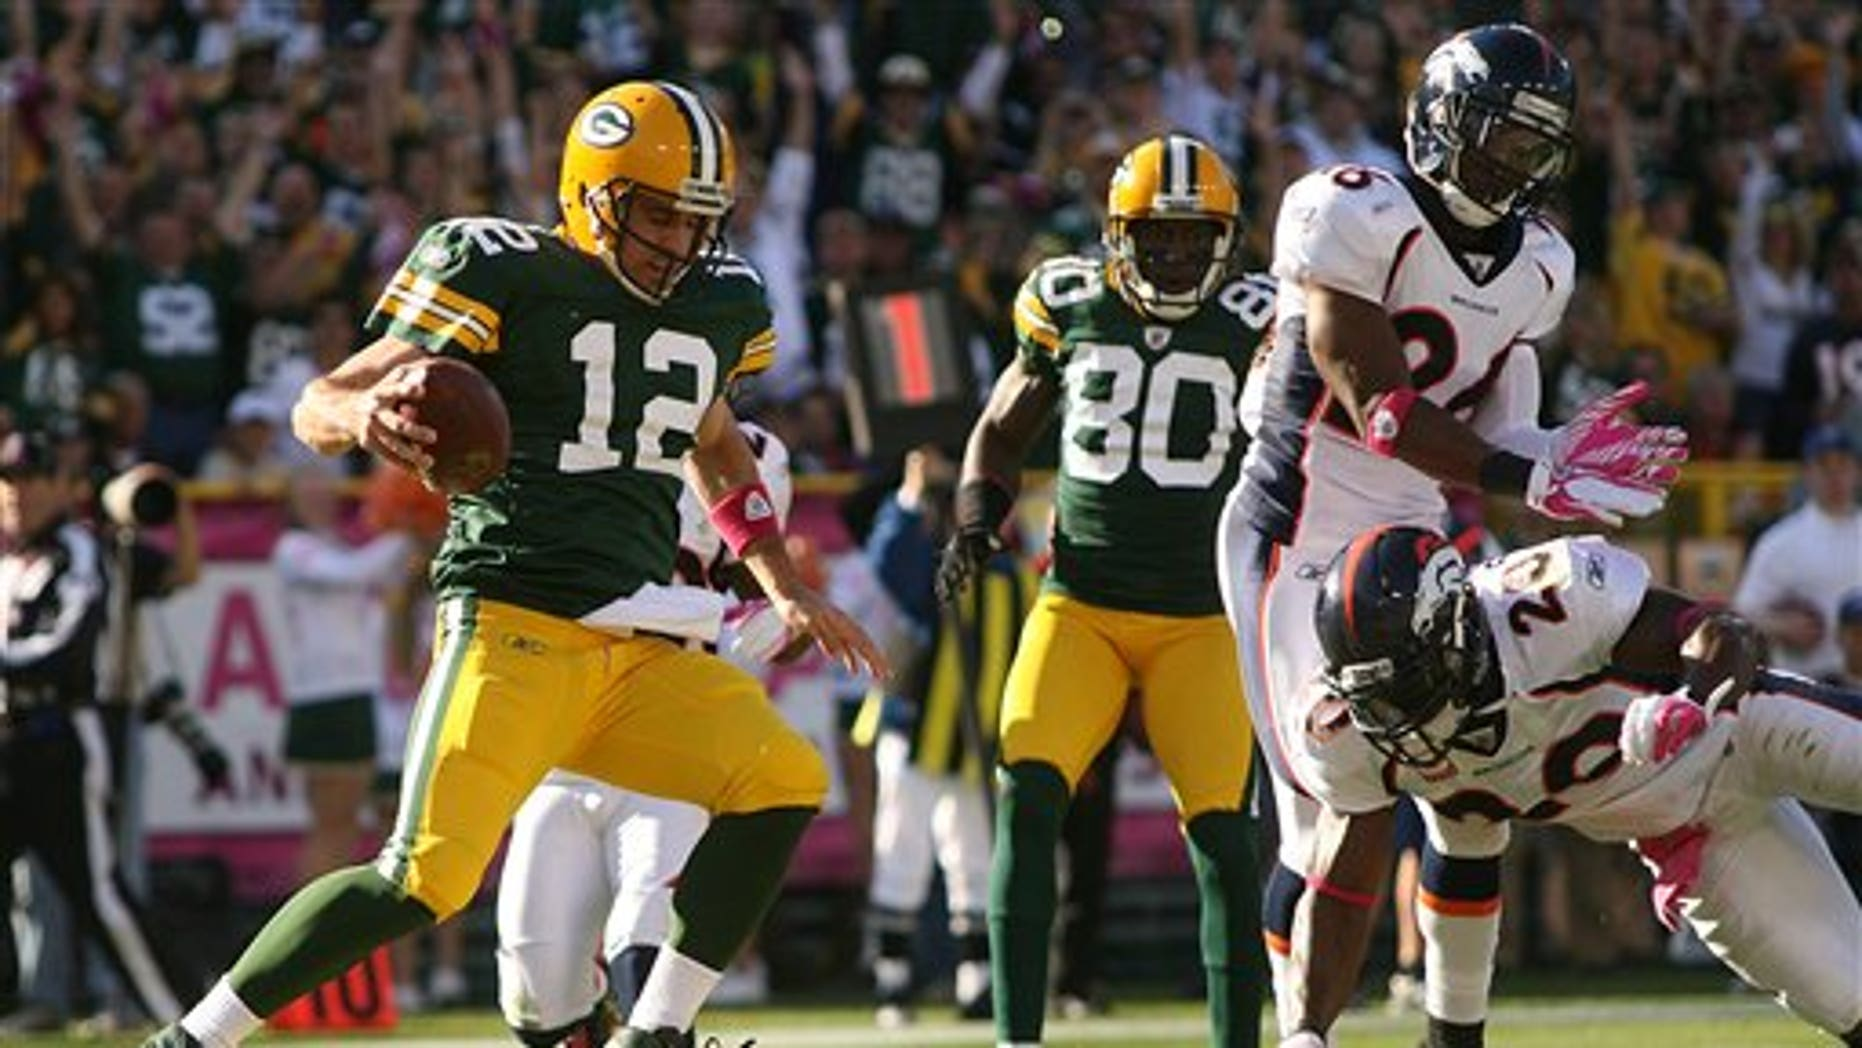 Oct. 2: Green Bay Packers quarterback Aaron Rodgers (12) runs in for a touchdowns in the second quarter of an NFL football game against the Denver Broncos at Lambeau Field in Green Bay, Wis.